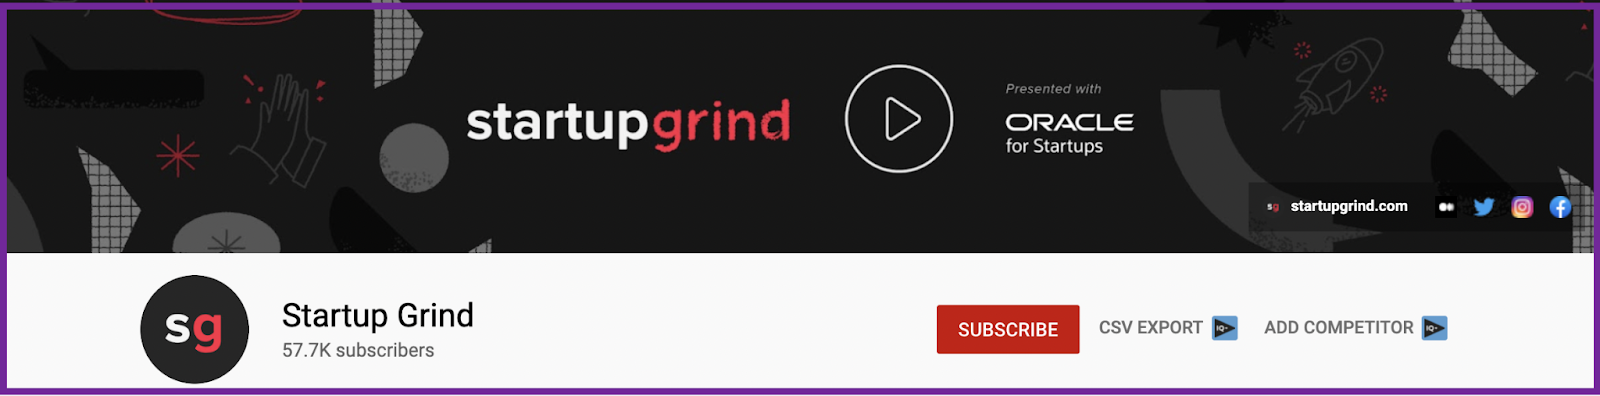 Screenshot-of-Startup-Grind's-YouTube-cool-channel-art